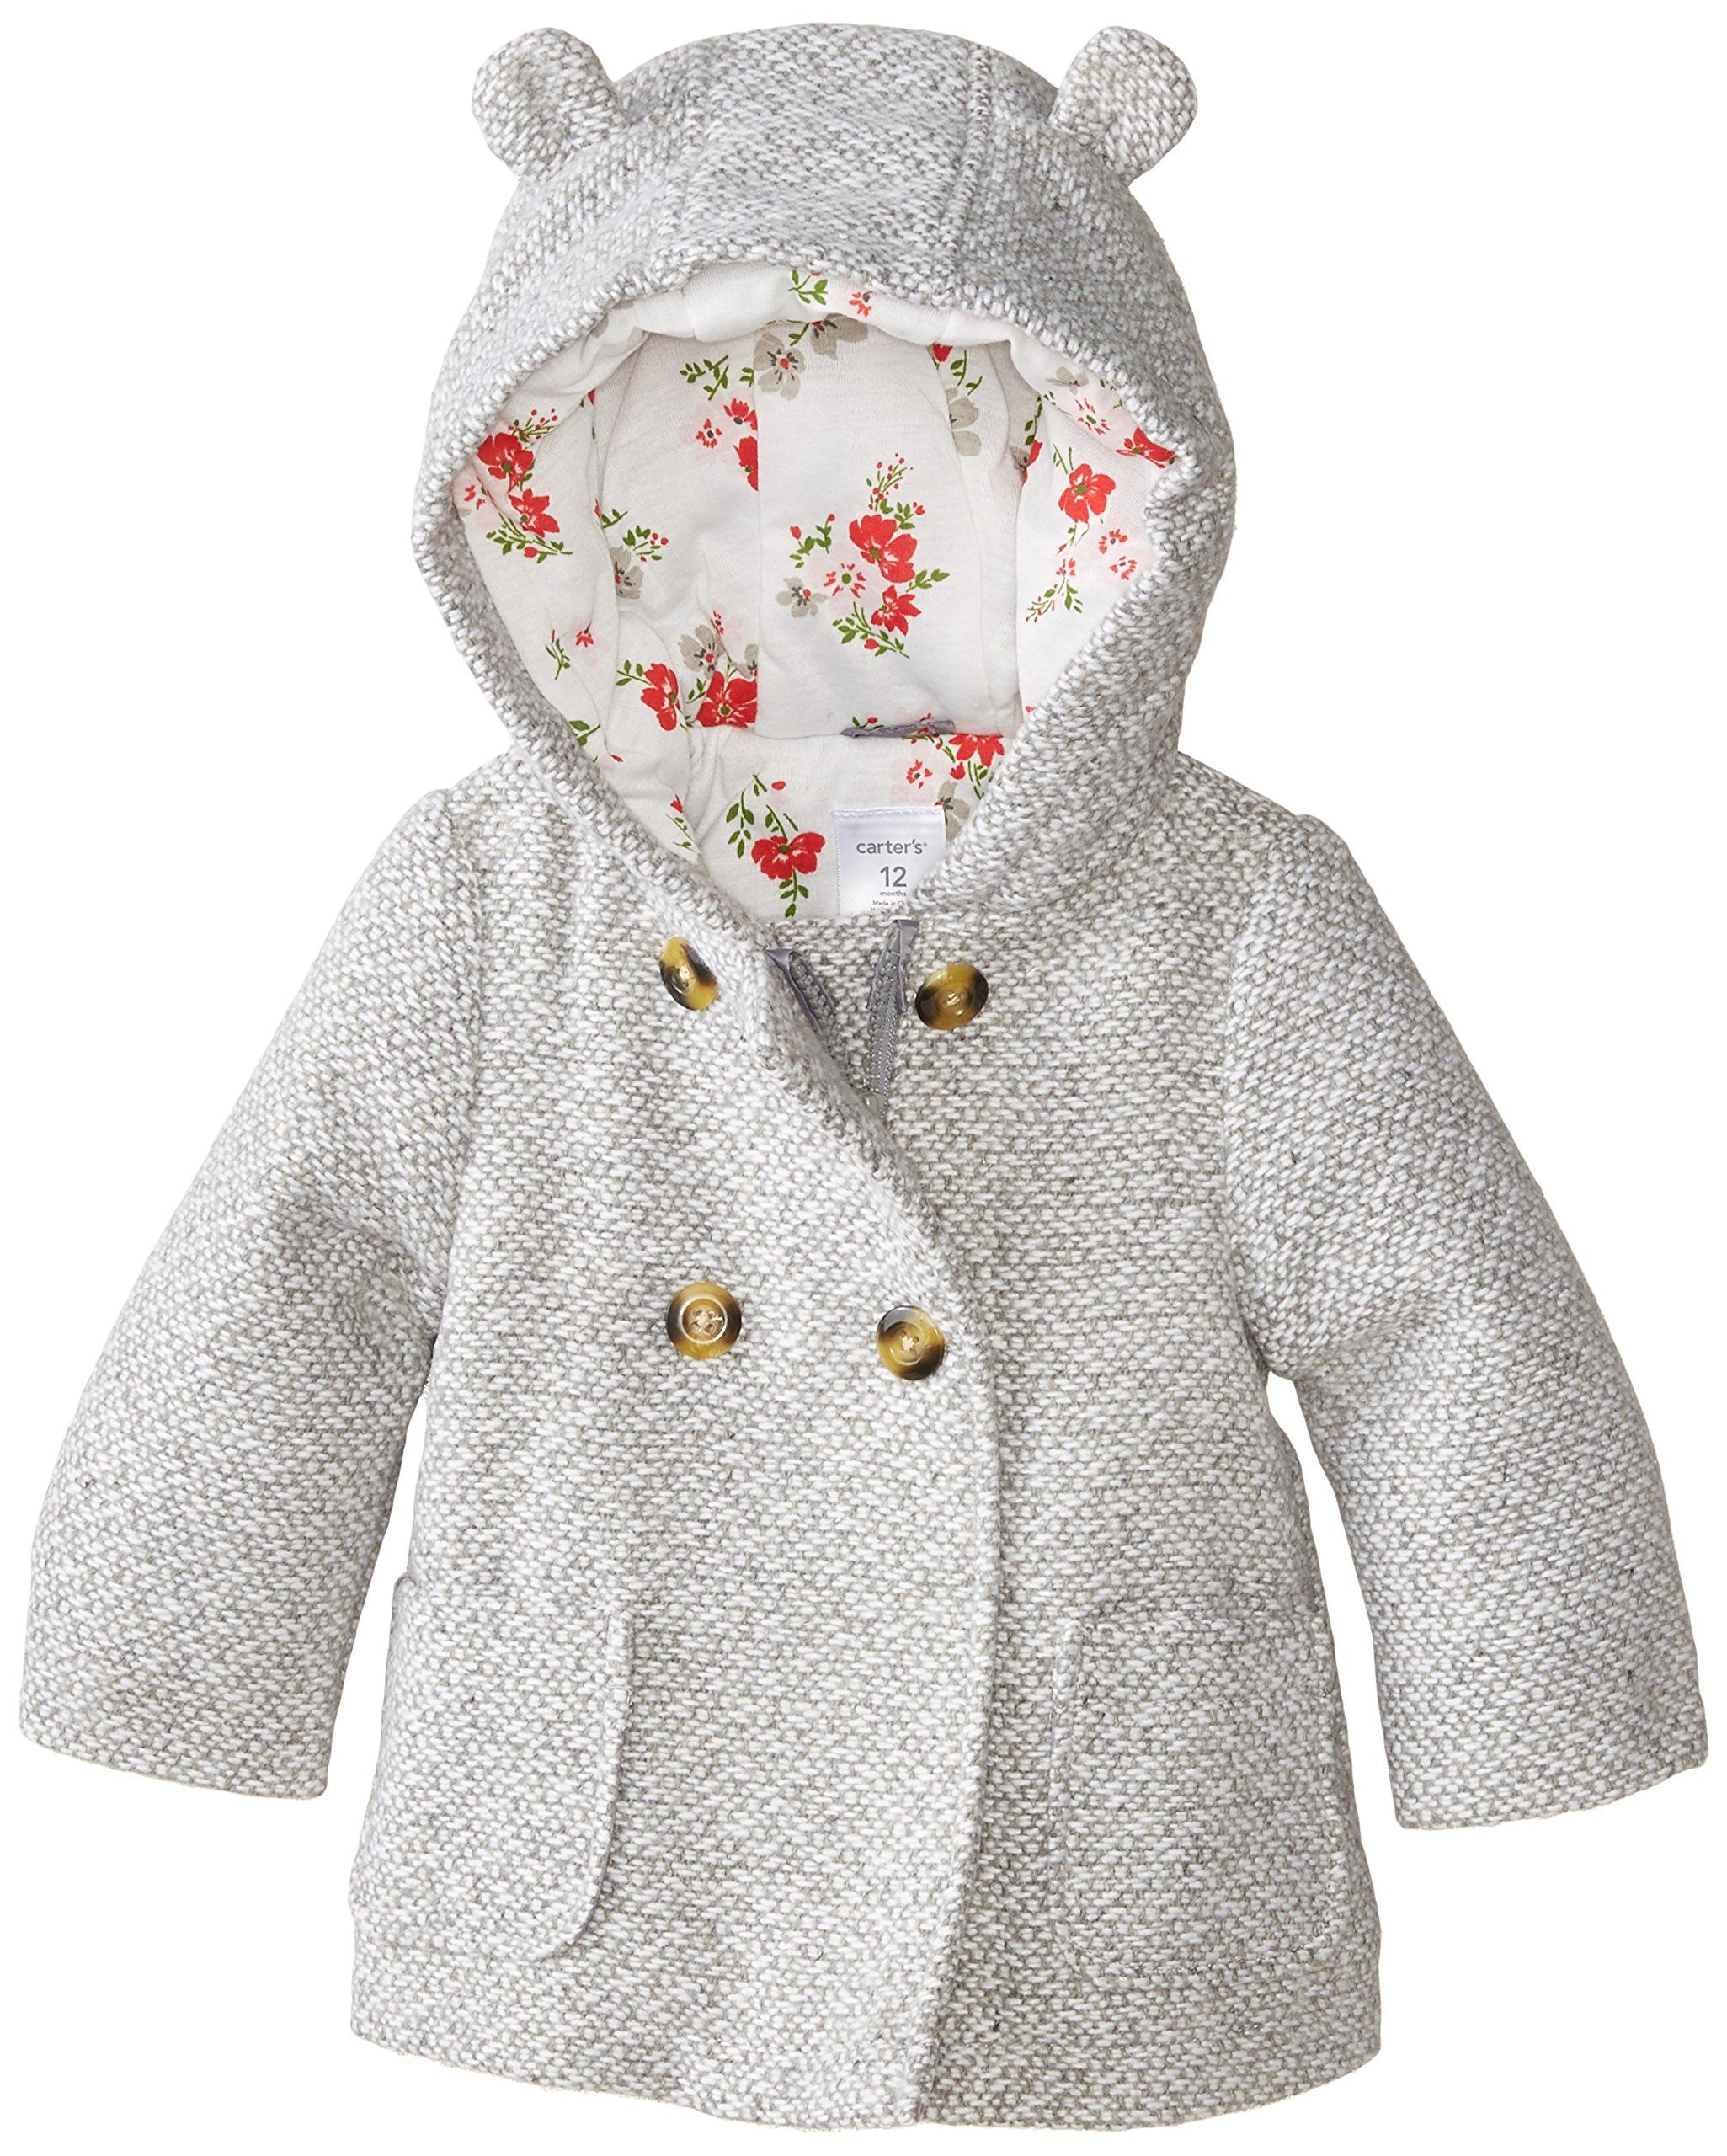 Amazon.com: Carter's Baby Girls' Infants Trans Single Jacket ...